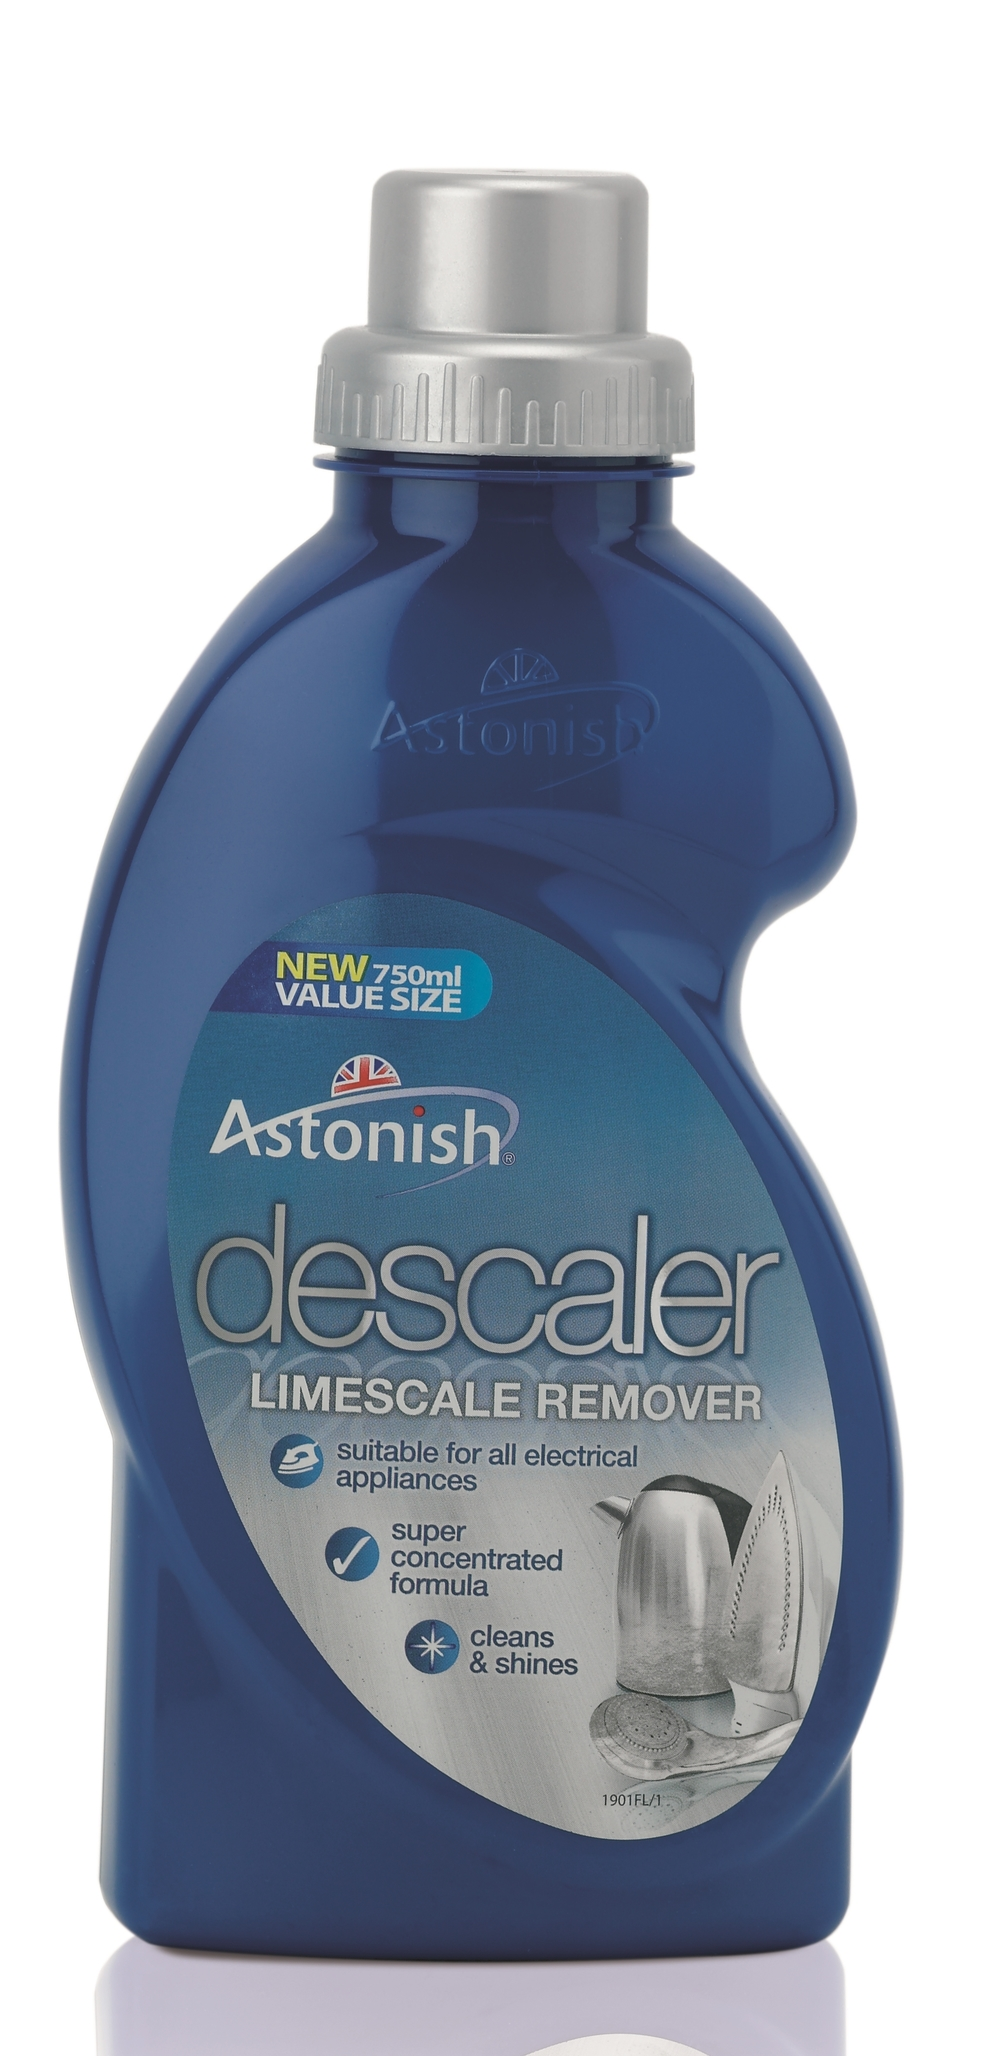 Astonish Descaler Limescale Remover 750ml.jpg